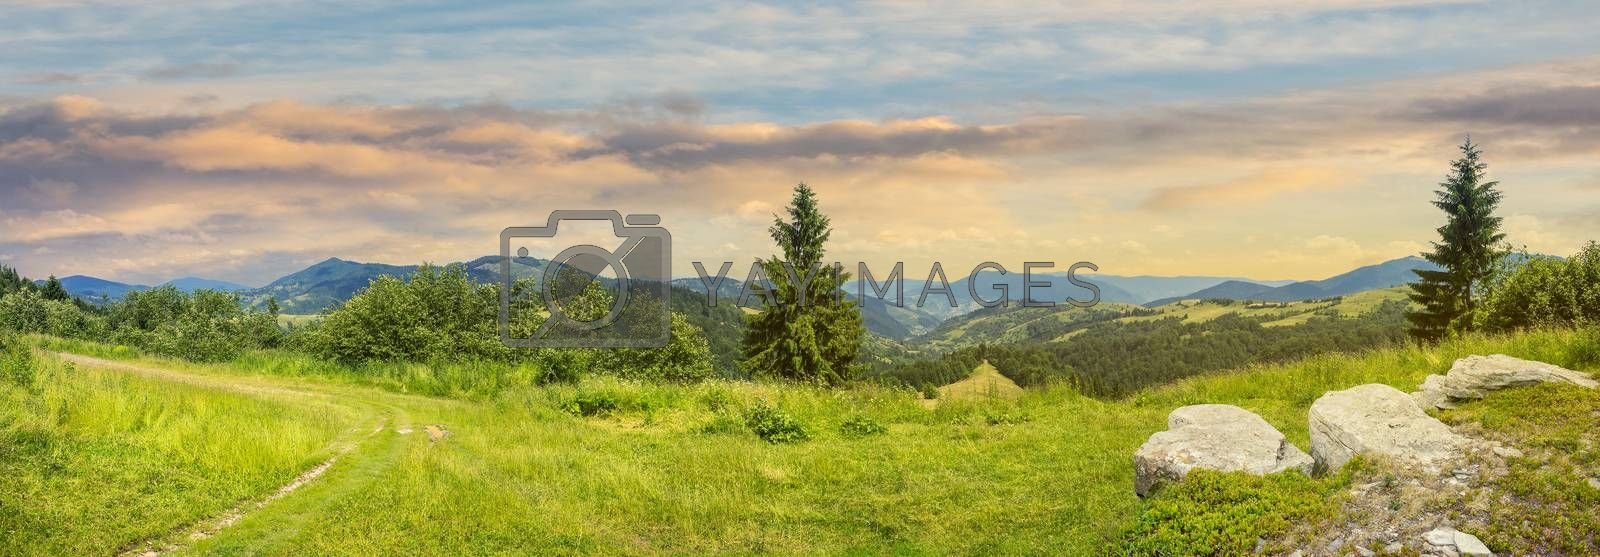 pnoramic collage  landscape. boulders on the meadow with path on the hillside and two pine trees on top of mountain range at sunrise